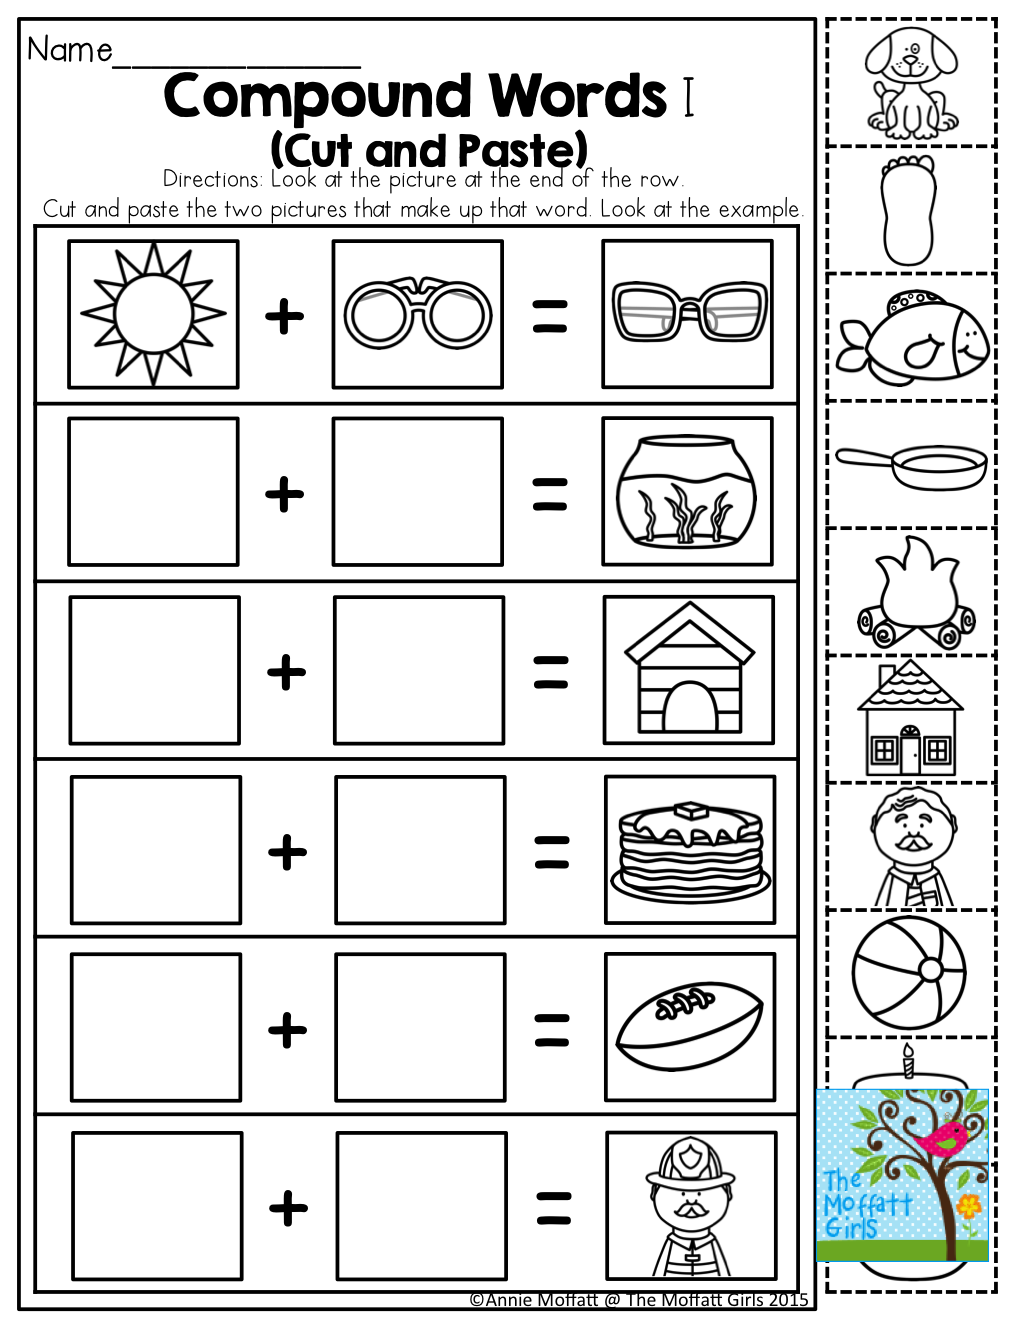 Compound Word Tracing Worksheet For Preschool Compound